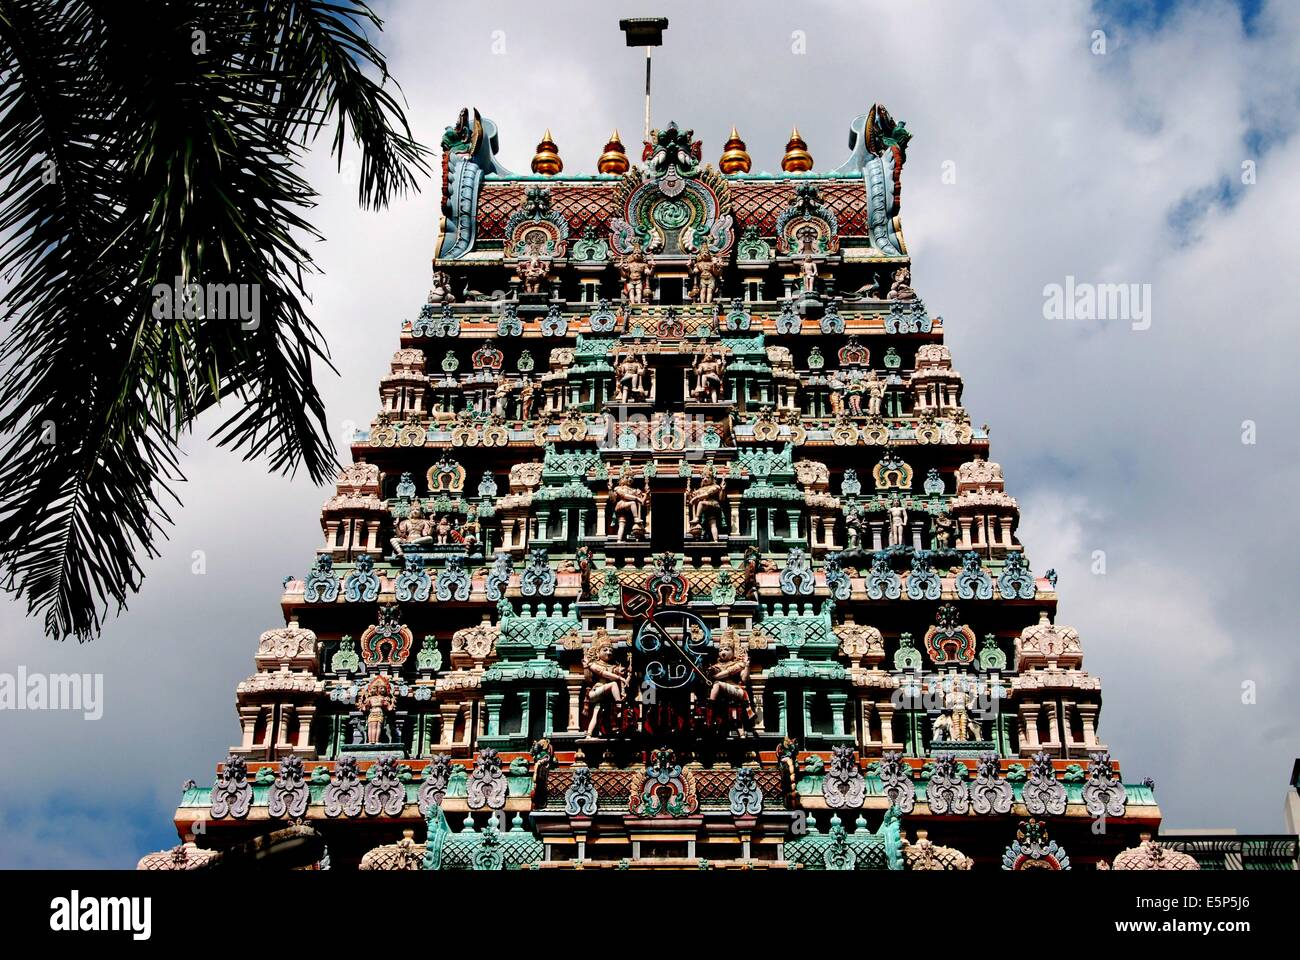 SINGAPORE:  The Sikhara tower of Sri Thendayuthapani Hindu temple on Tank Road covered with colourful Indian deities - Stock Image